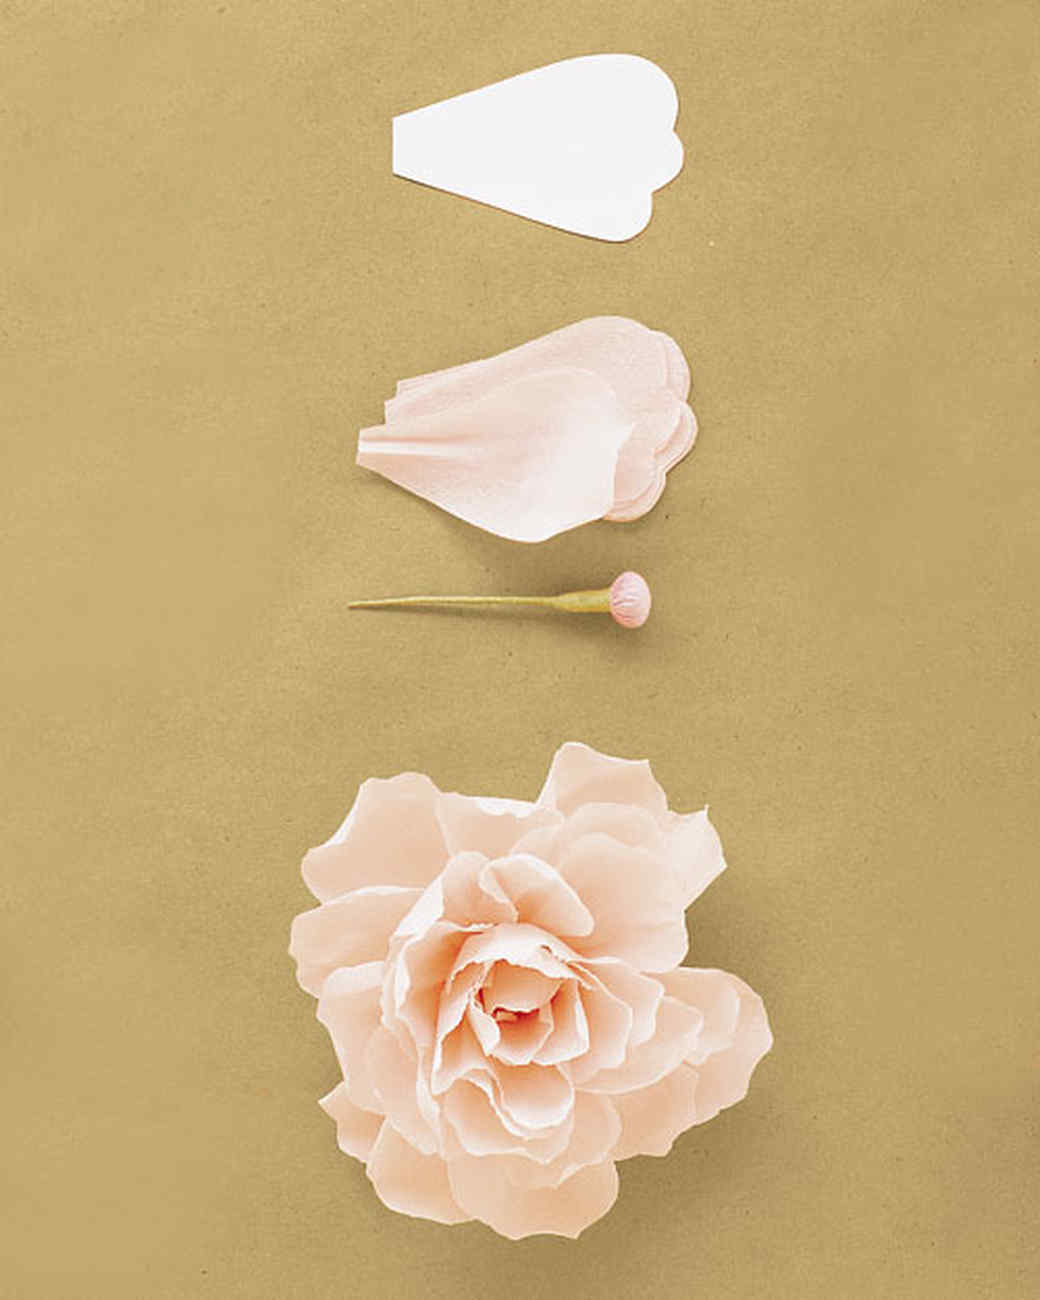 Paper flowers diy martha stewart flowers healthy paper flower templates martha stewart mightylinksfo